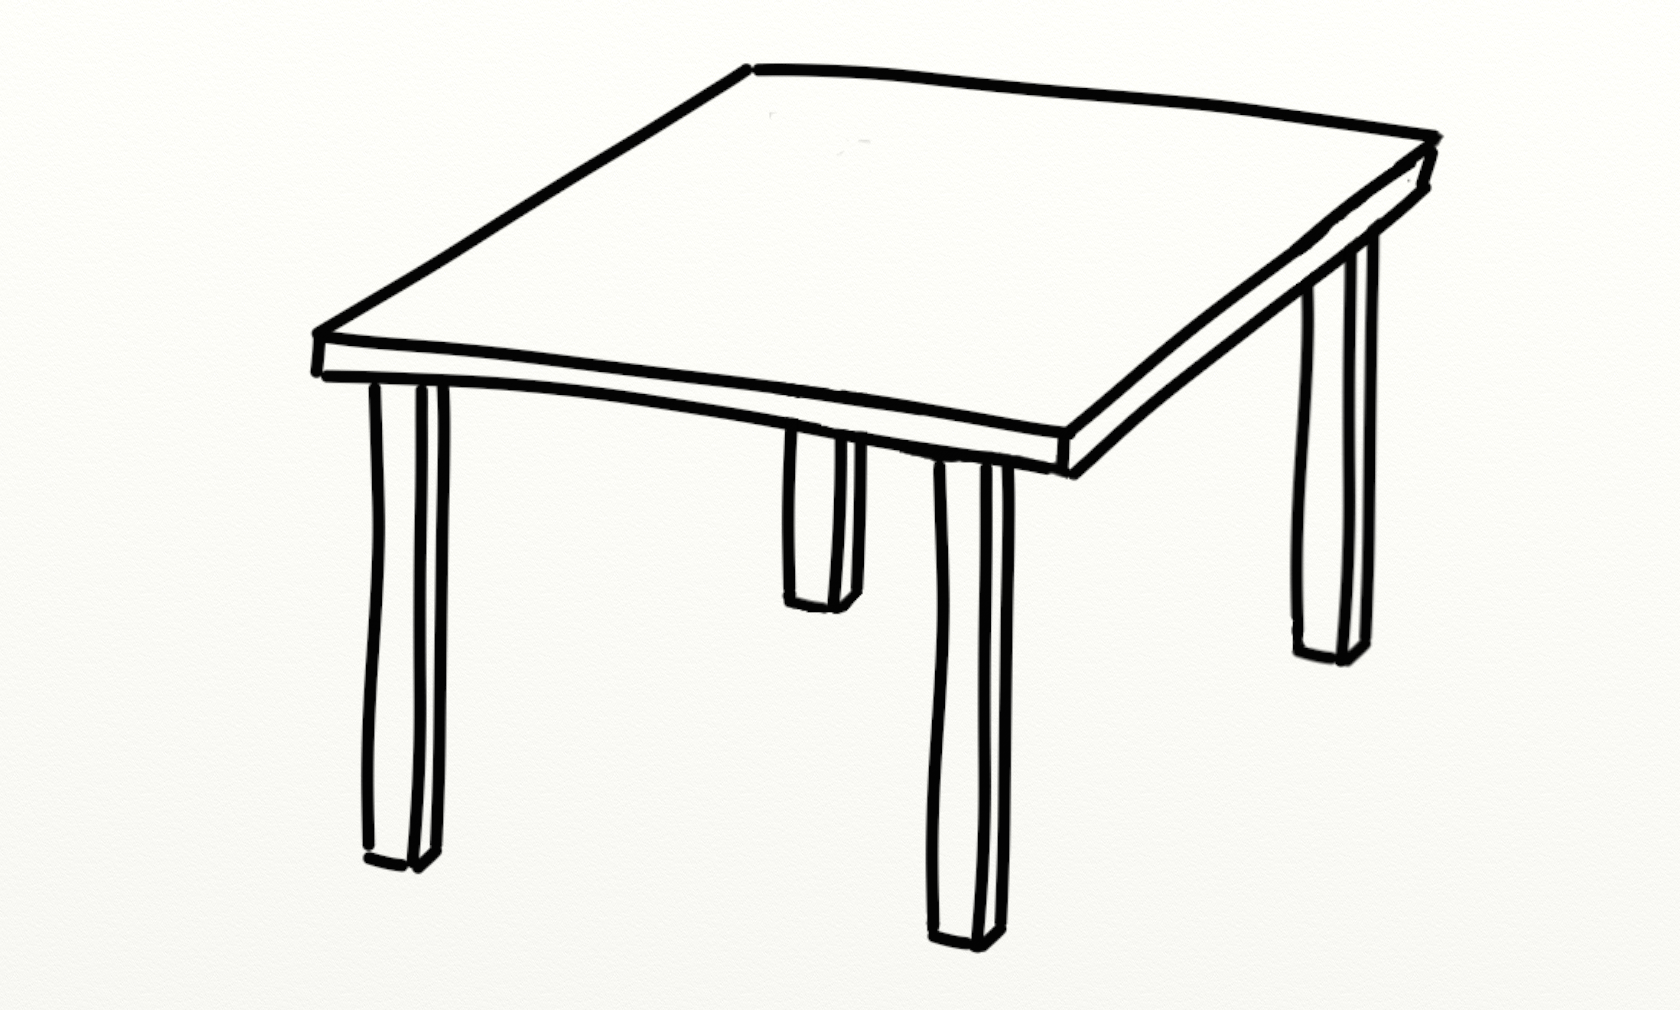 Clip Art Table Clip Art clip art coffee table clipart kid 13 outline free cliparts that you can download to computer